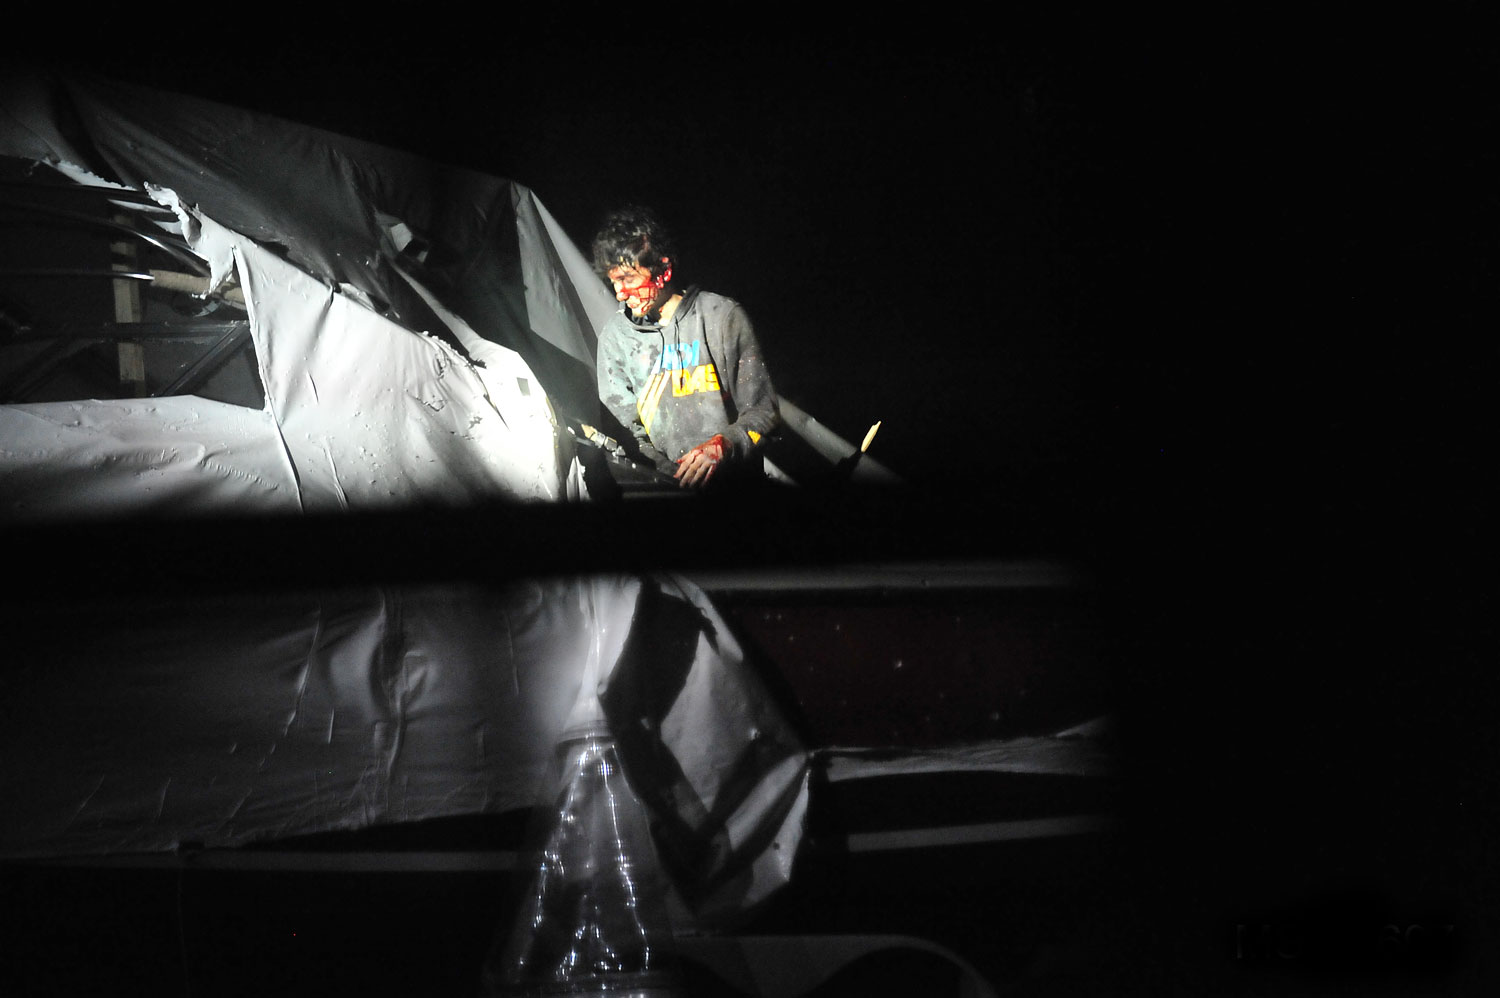 <b>7:31:11 p.m.</b> Tsarnaev stands in the boat.